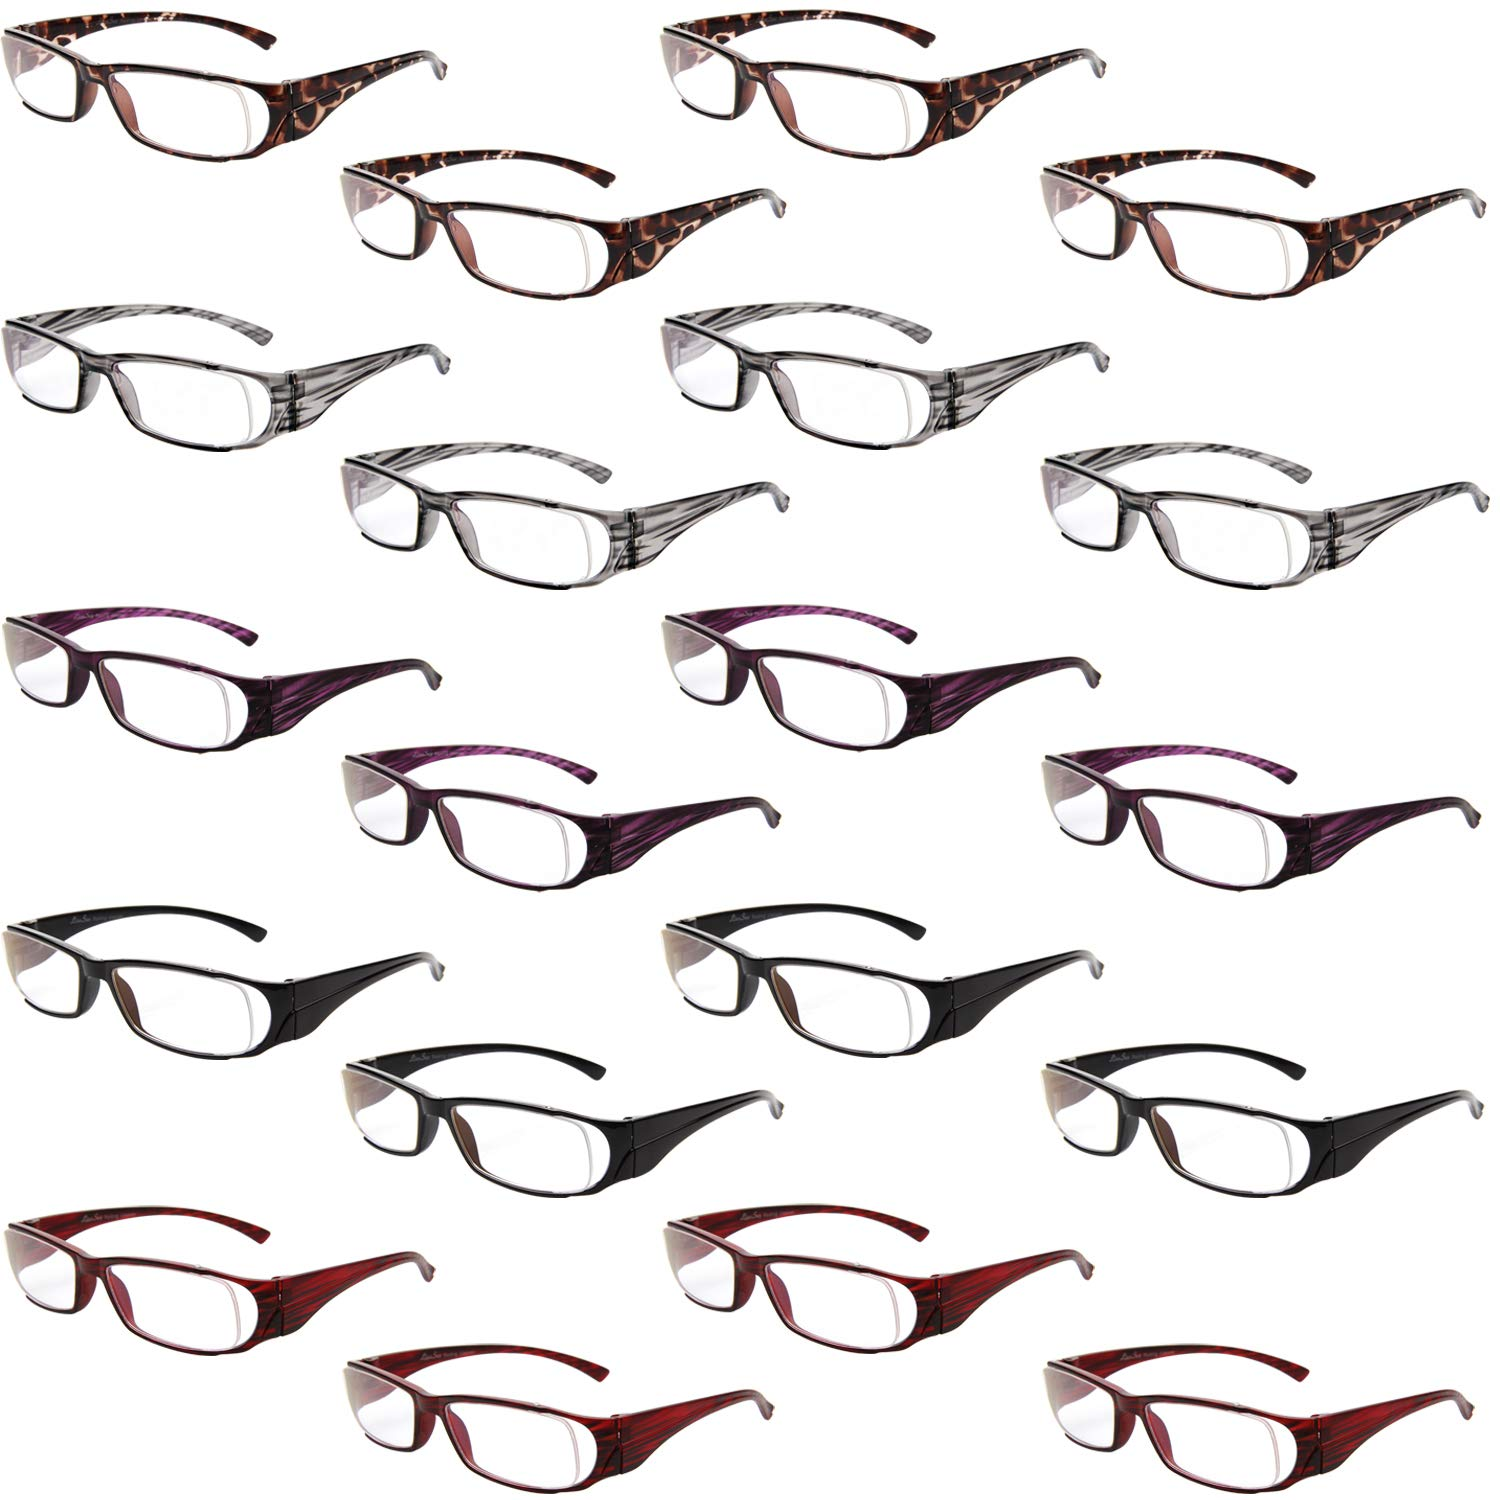 f13f216fc095 Amazon.com  LianSan Wholesale Lot Clear Vision 20 Pack Readers Unisex Reading  Glasses  Clothing